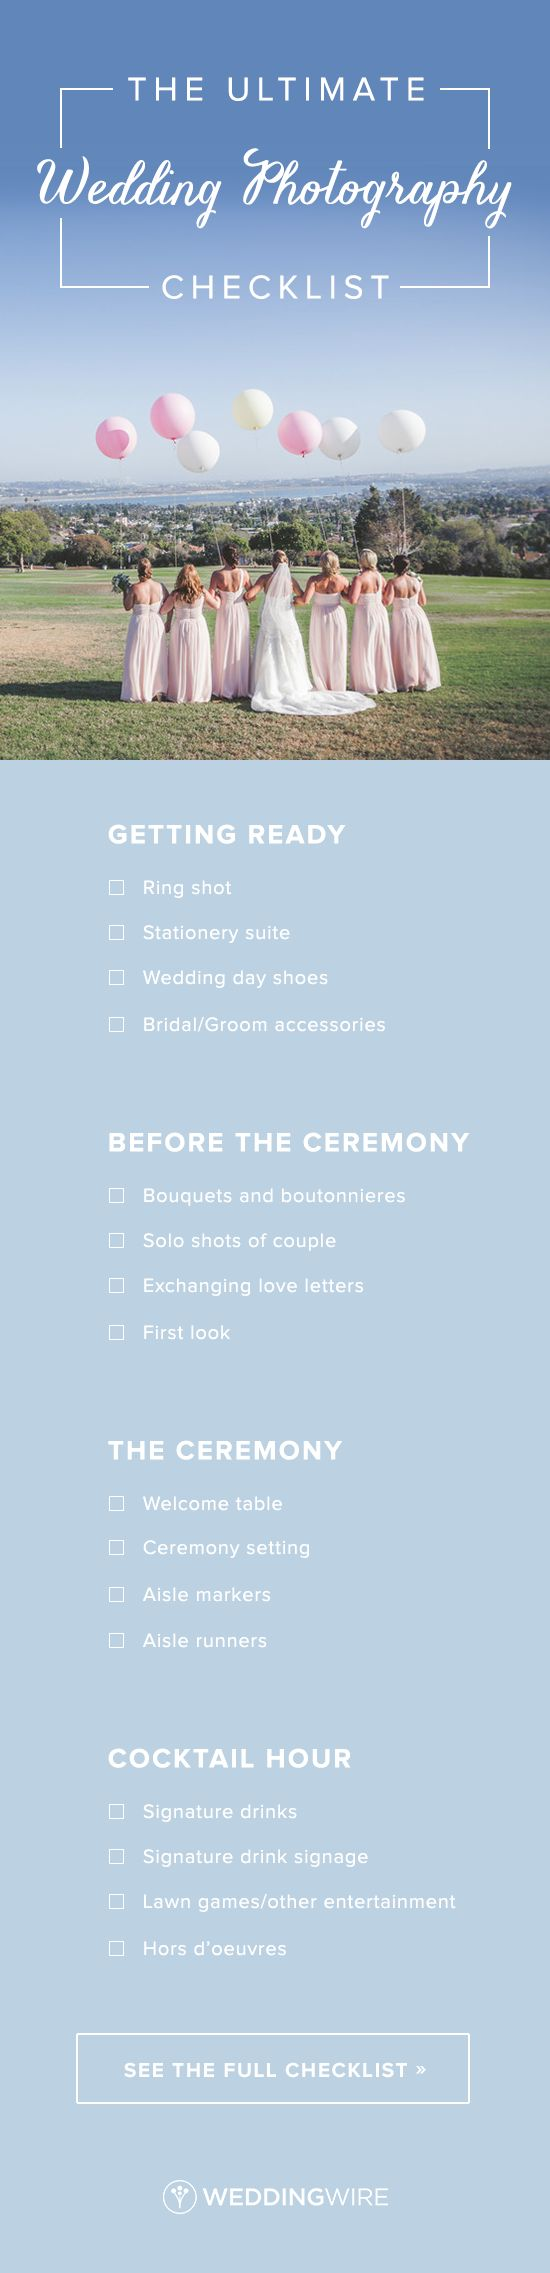 The Ultimate Wedding Photography Checklist - On a day filled with so many picture-worthy moments it can be hard to keep track. See the full list of all the must-have wedding photos on @weddingwire! {Brit Jaye Photography}